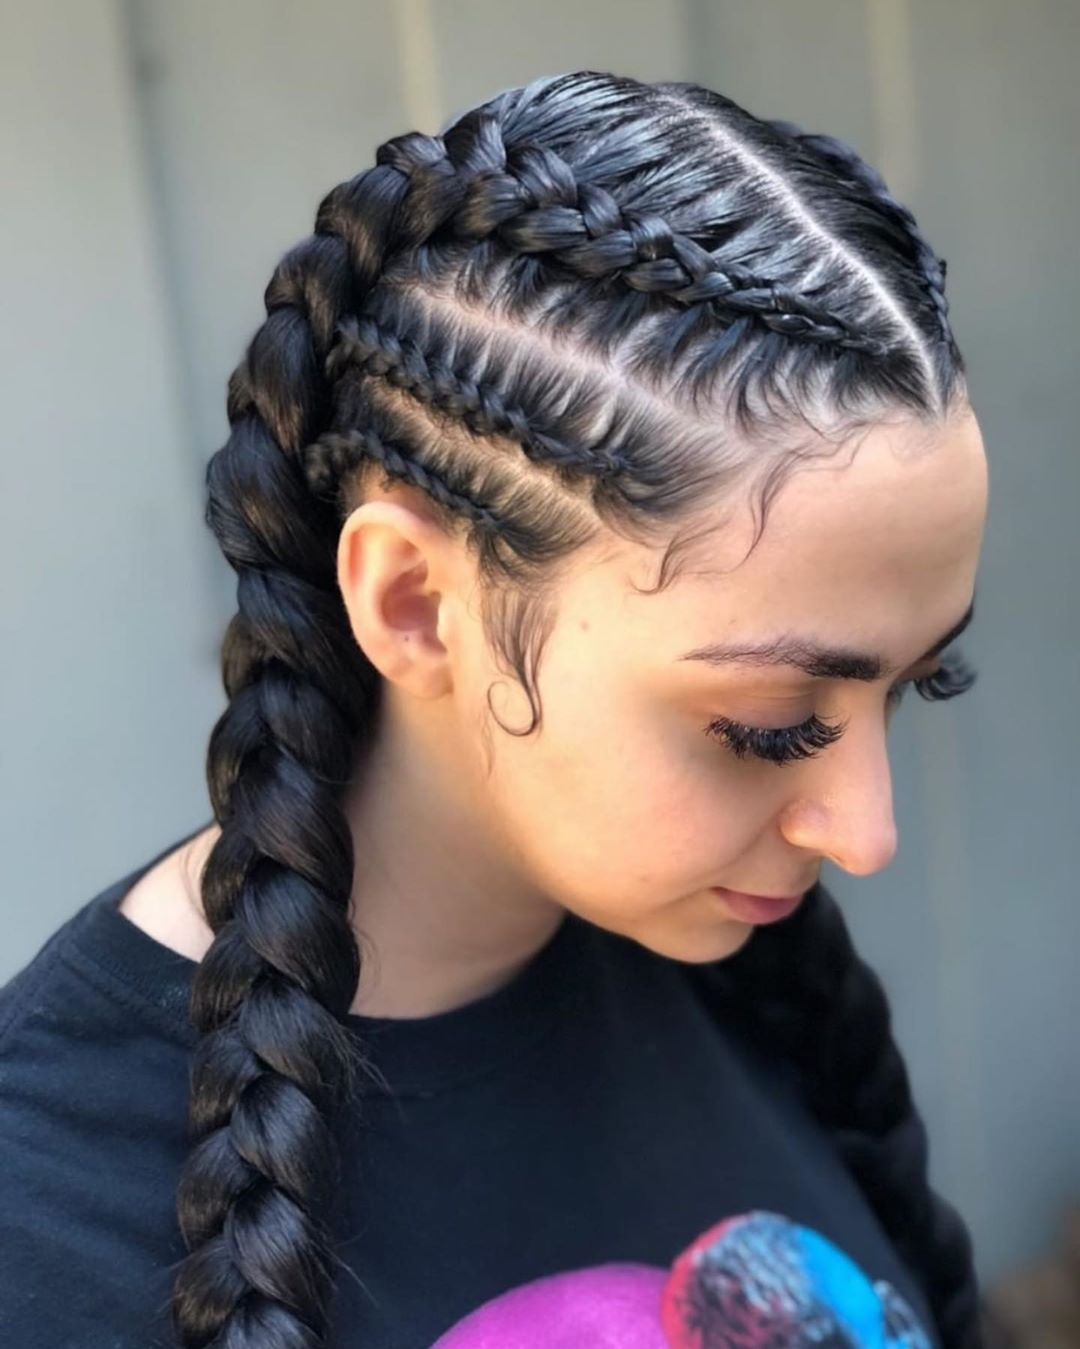 Your Braids On Instagram So In Love With These Braids Braid By Everylittlestrand Long Hair Styles Kids Braided Hairstyles Hairdo For Long Hair